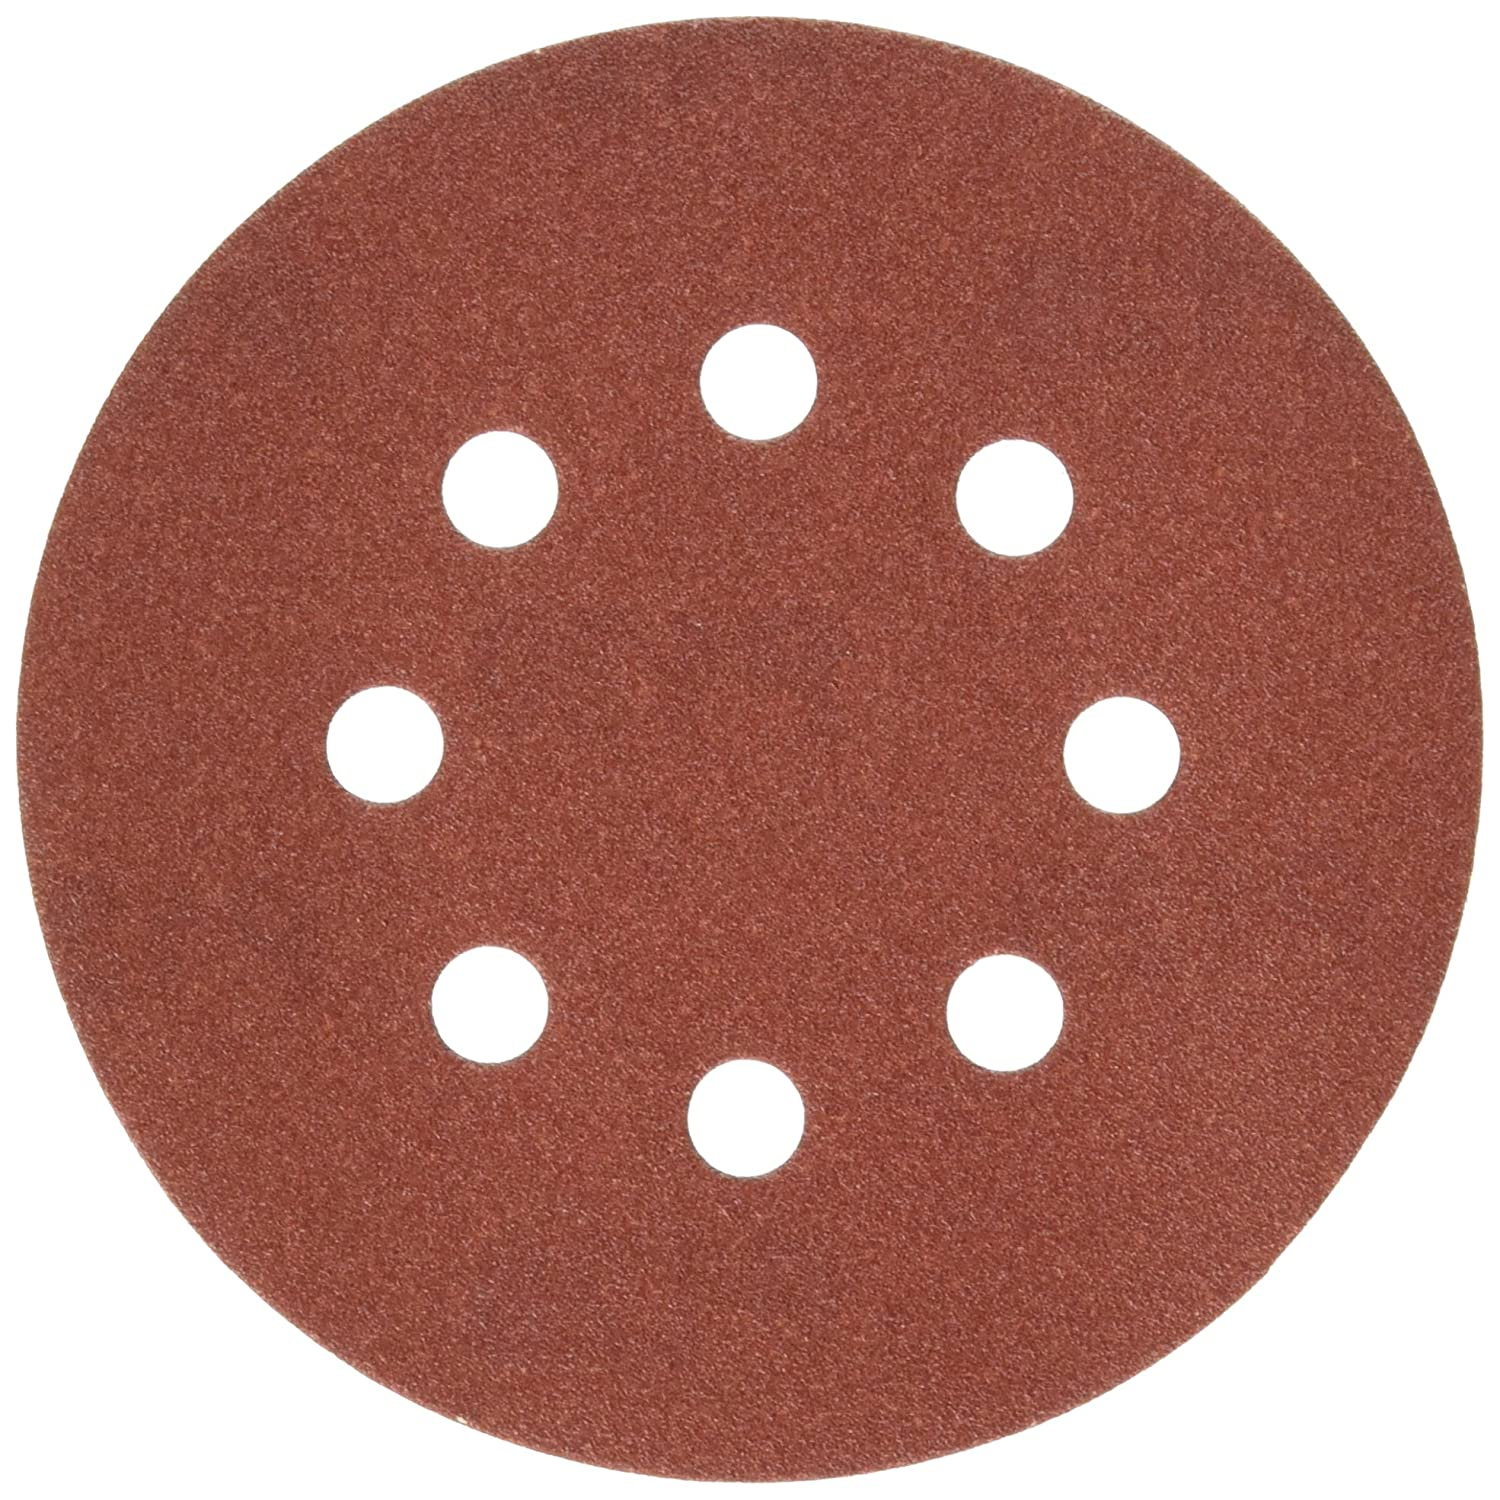 PORTER-CABLE 735801225 5-Inch 8-Hole Hook and Loop 120 Grit Sanding Discs 25-Pack